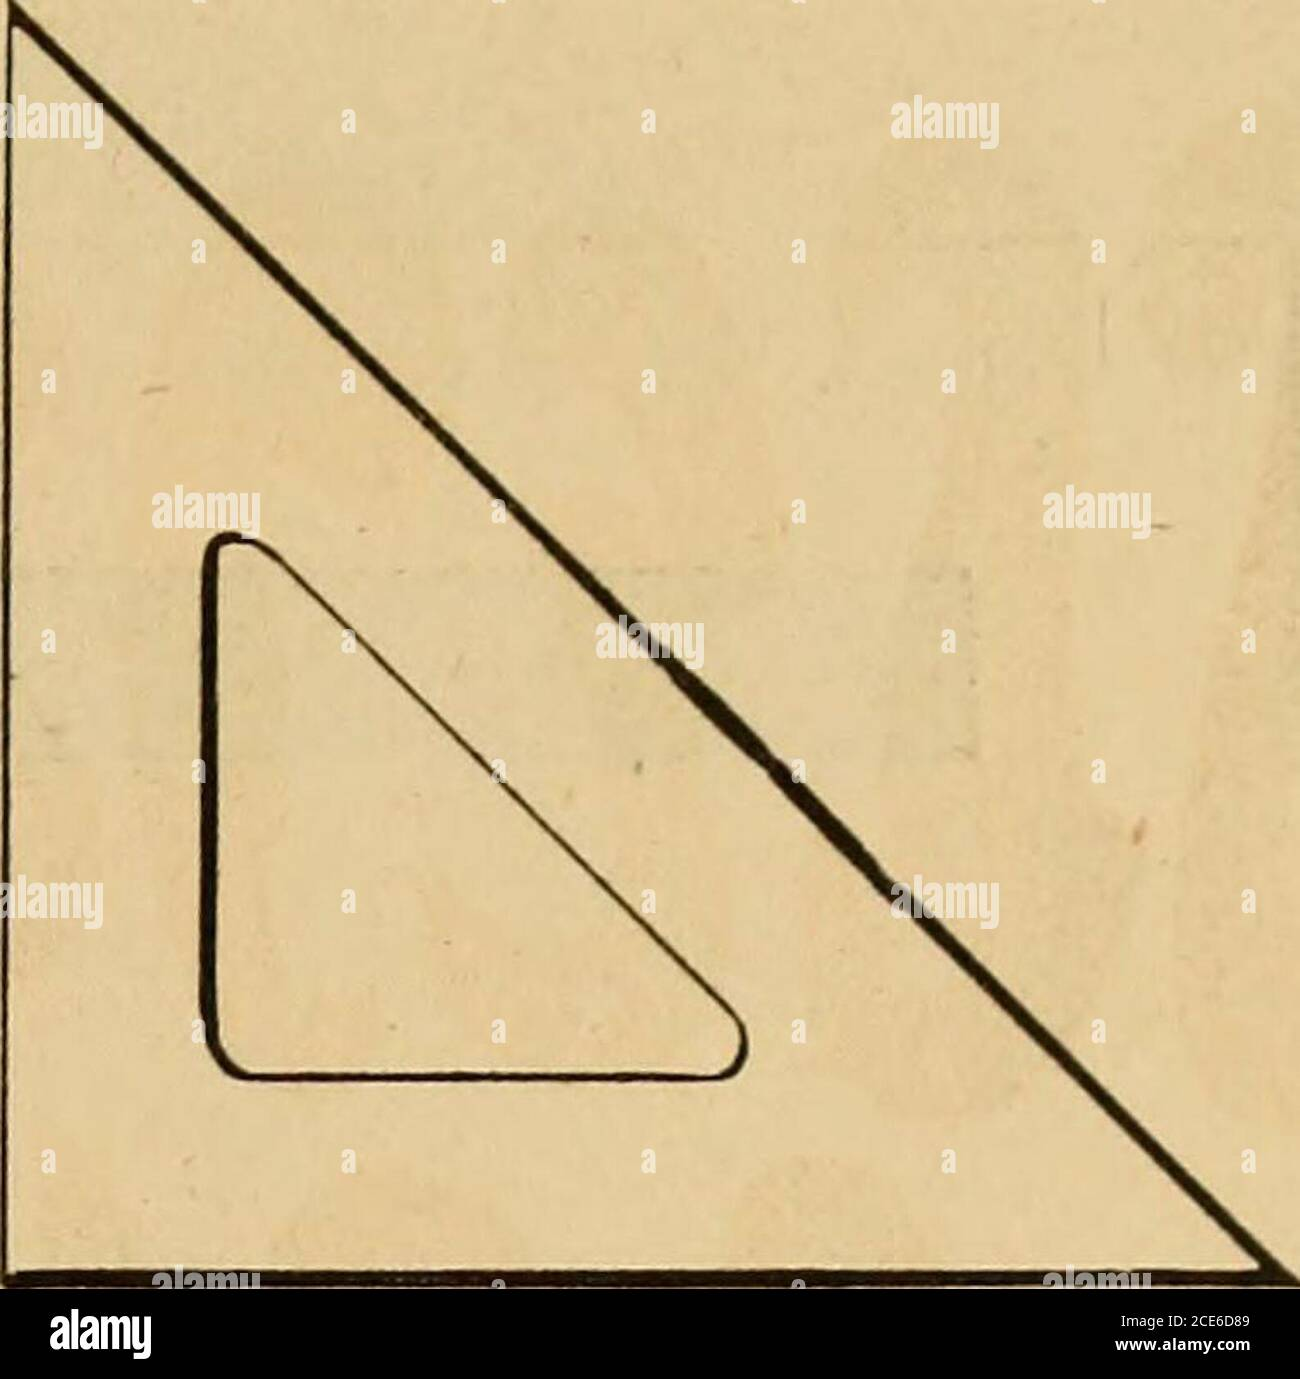 . A catalogue and price-list of drawing instruments . 618 619 618 Transparent Triangles, 300 x 6o°. 4 5 6 7 8 9 10 11 12 13 14 15 16 $0 3° 35 4o 50 60 70 80 1 00 1.15 1 45 1 75 2 10 2 40 619 Transparent Triangles, 45°. 456789 10 11 12 13 14 15 16 #0 40 50 60 70 80 1 00 1 15 1 45 1 75 2 10 2 40 2 75 3 25 621 Transparent Lettering Angles, 3 in set, per set $1 75 623 Transparent Irregular Curves. For Illustrations of Patterns, see Page 58. Nos. i 2 3 4 5 6 7 8 9 10 11 12 13 14 $0 40 40 45 45 45 5° 5° 5° 55 65 55 5° 7° 75Nos. 15 16 17 18 19 20 21 22 23 24 25#0 85 o 85 1 00 1 00 1 10 1 10 1 00 1 10 Stock Photo